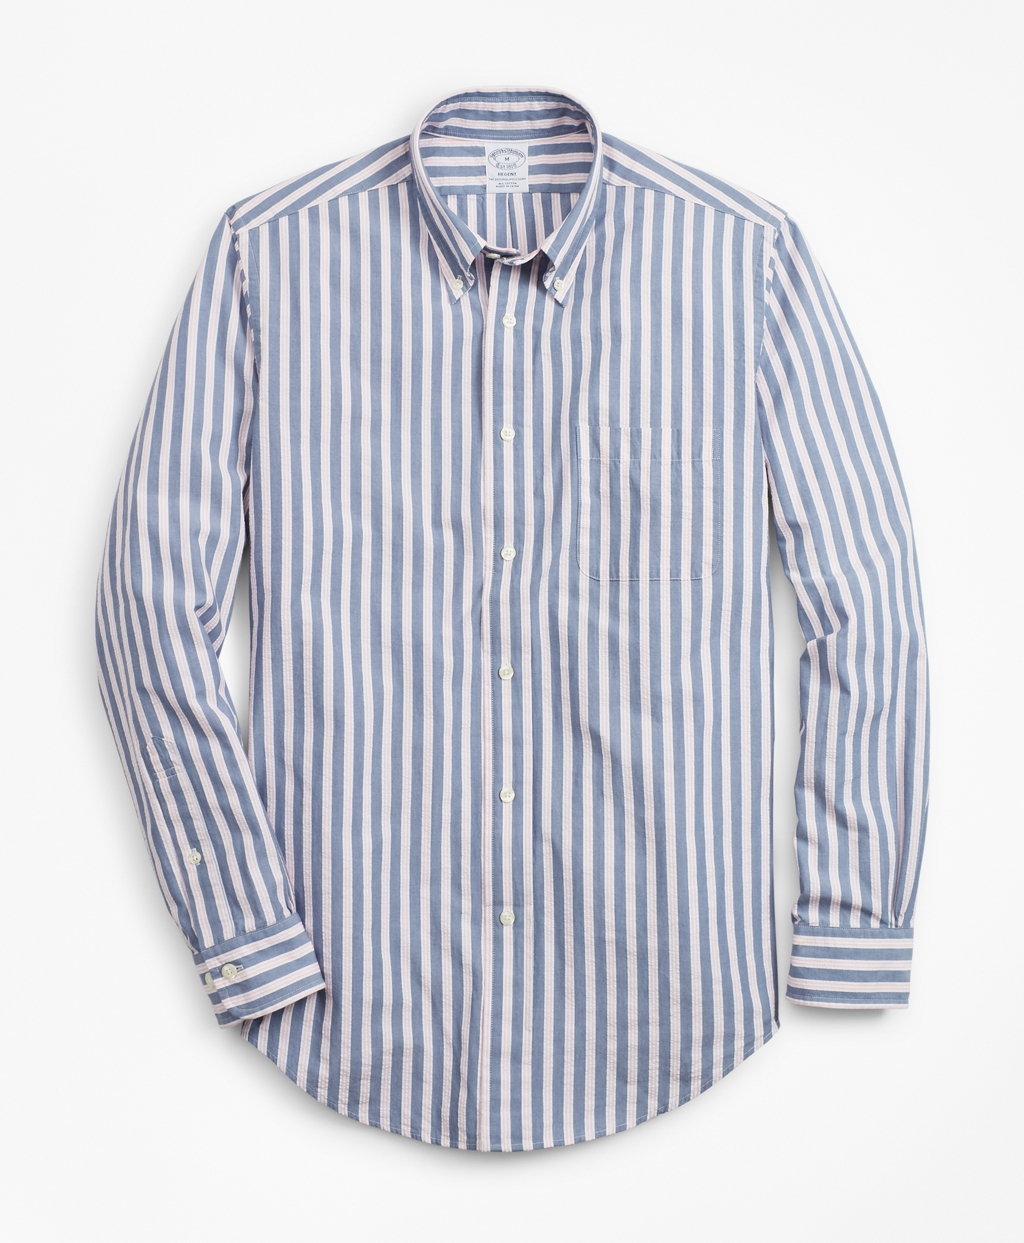 1920s Men's Dress Shirts Brooks Brothers Mens Regent Fit BB1 Stripe Seersucker Sport Shirt $79.50 AT vintagedancer.com